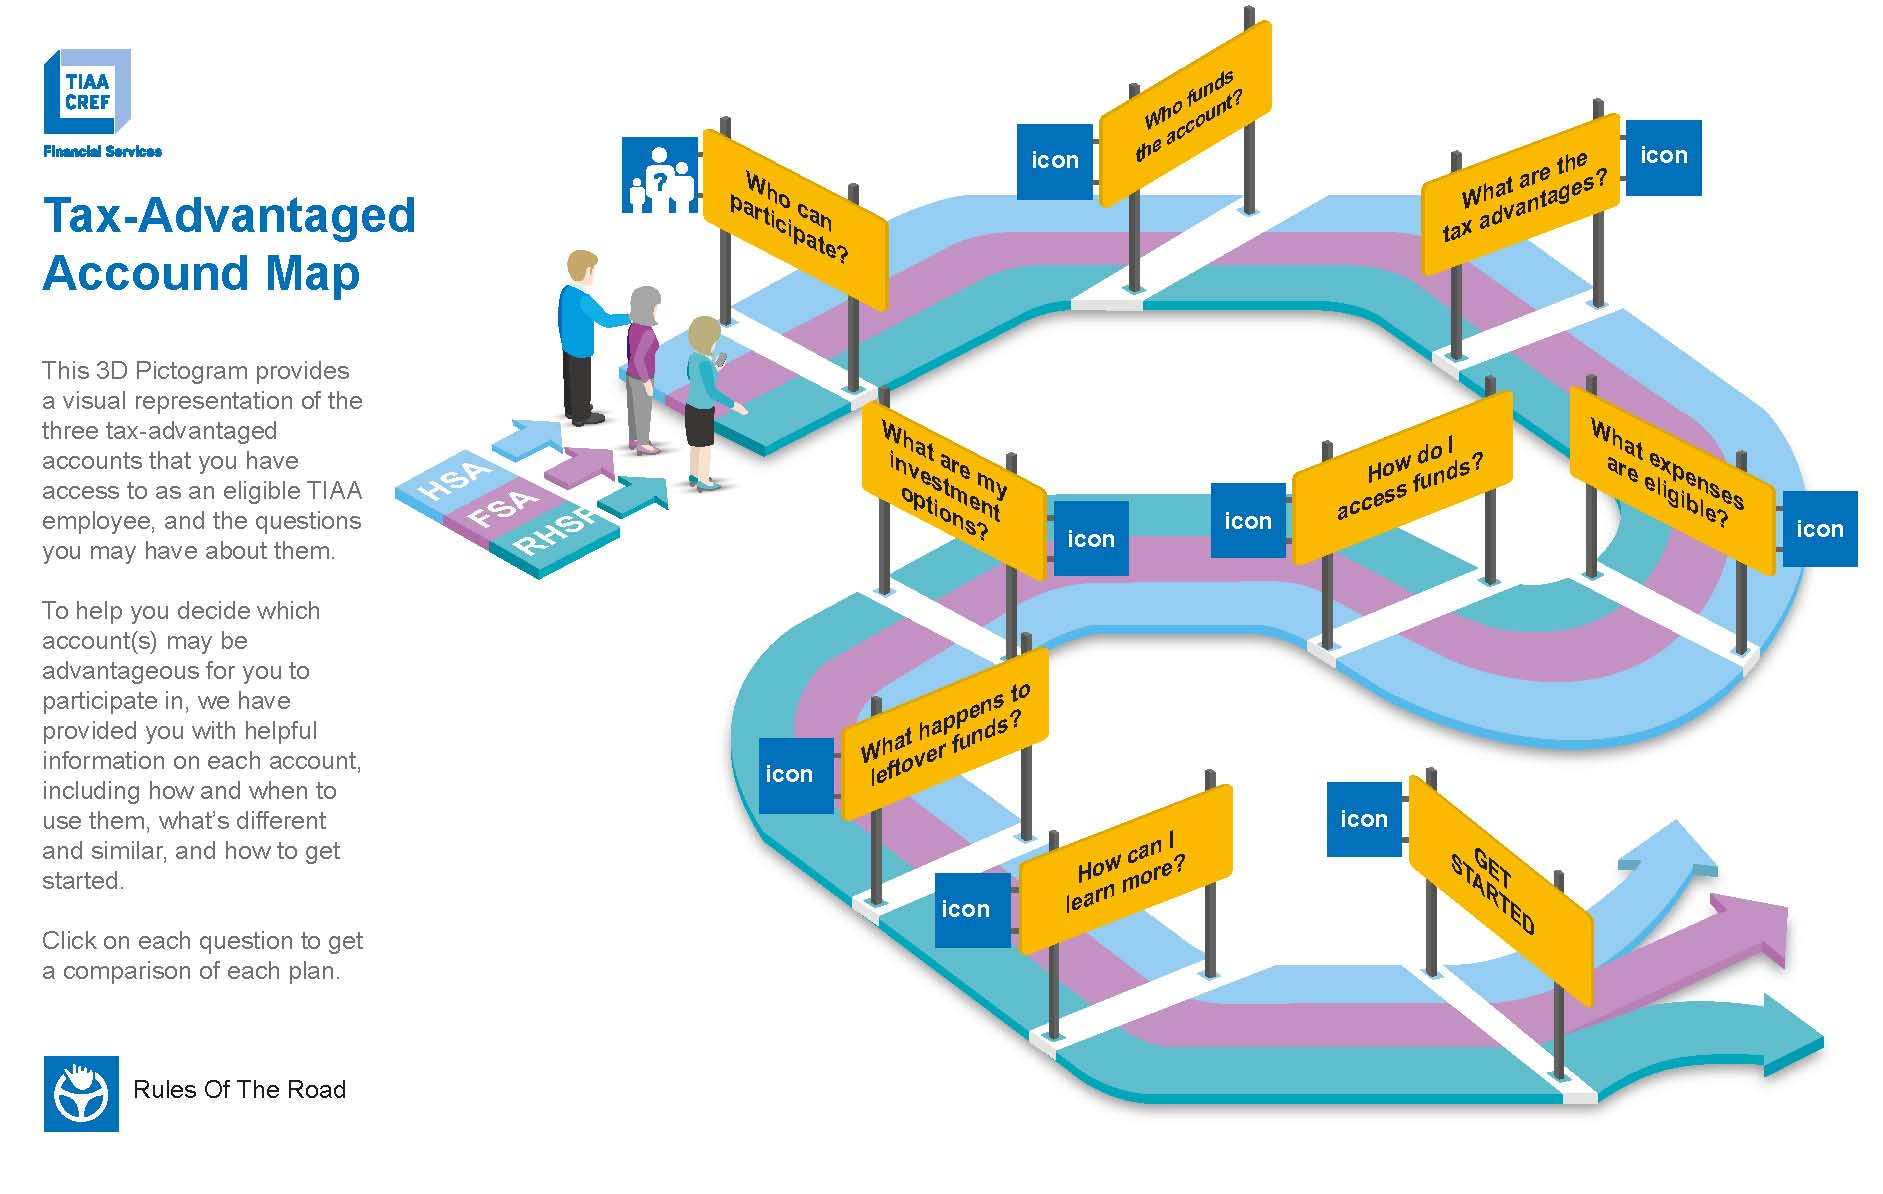 Visual Go-to-Market with Transformational Change and Employee Communications